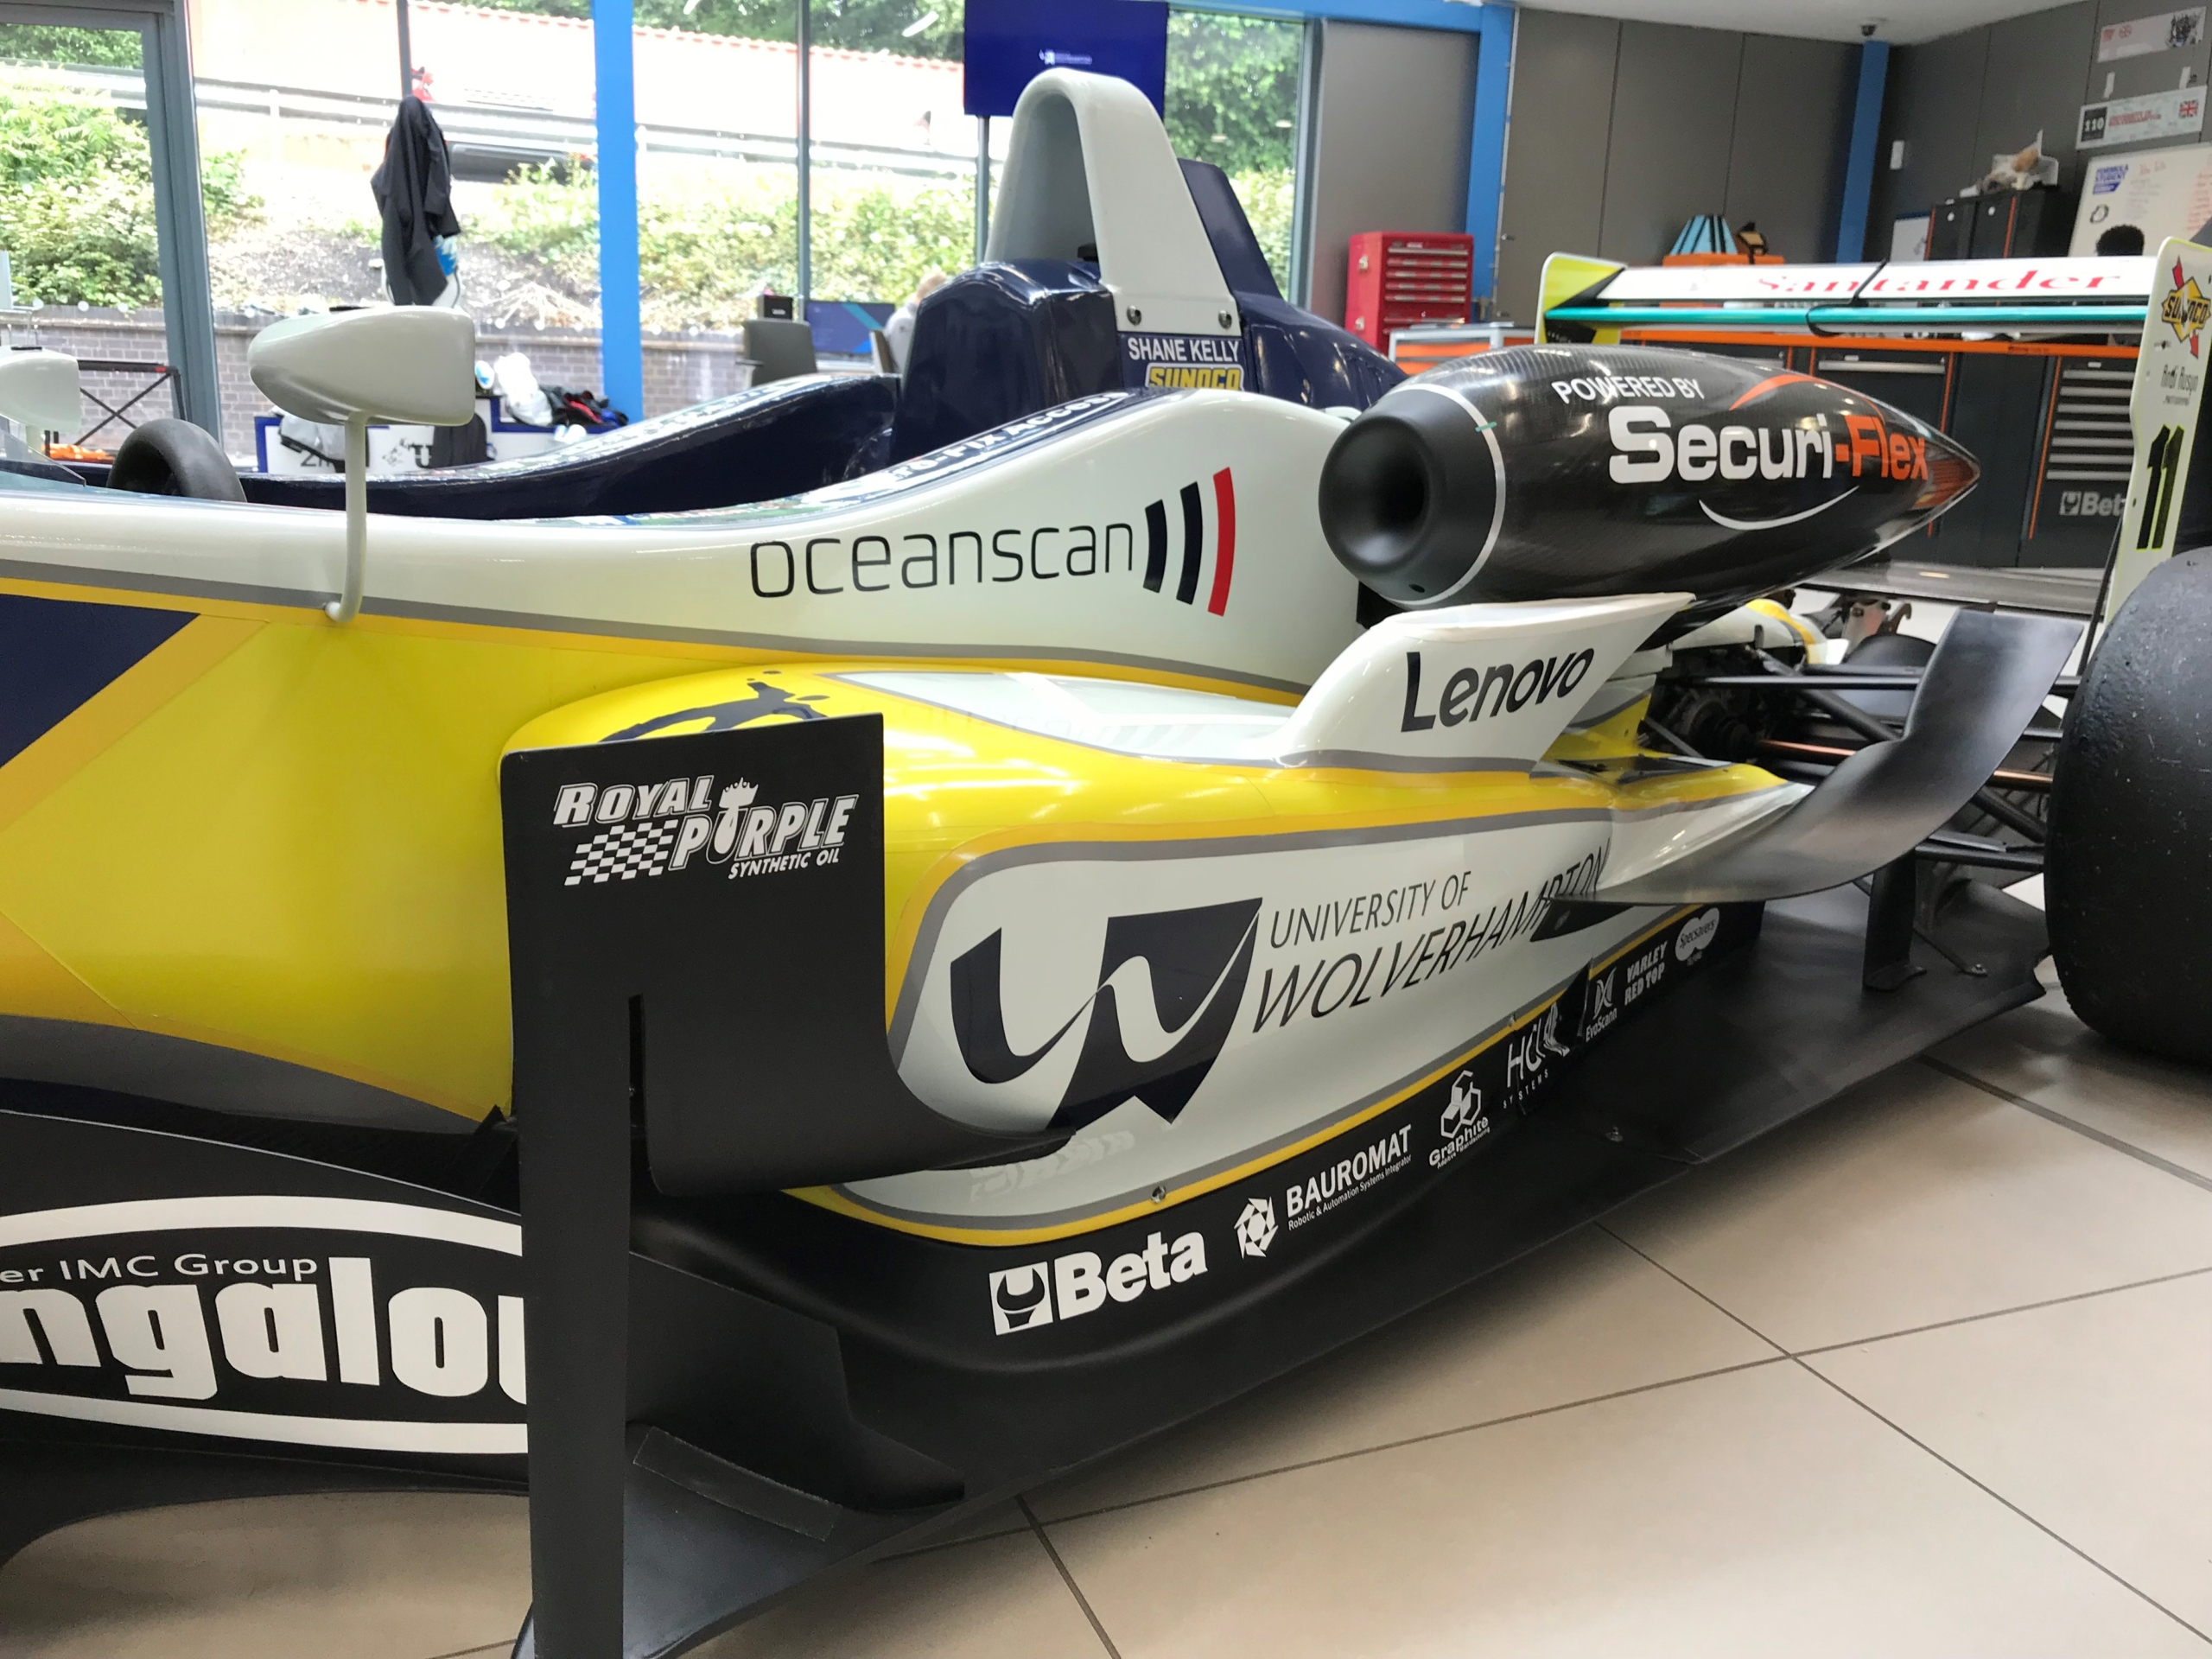 The Bauromat logo on the UWR F3 Cup car